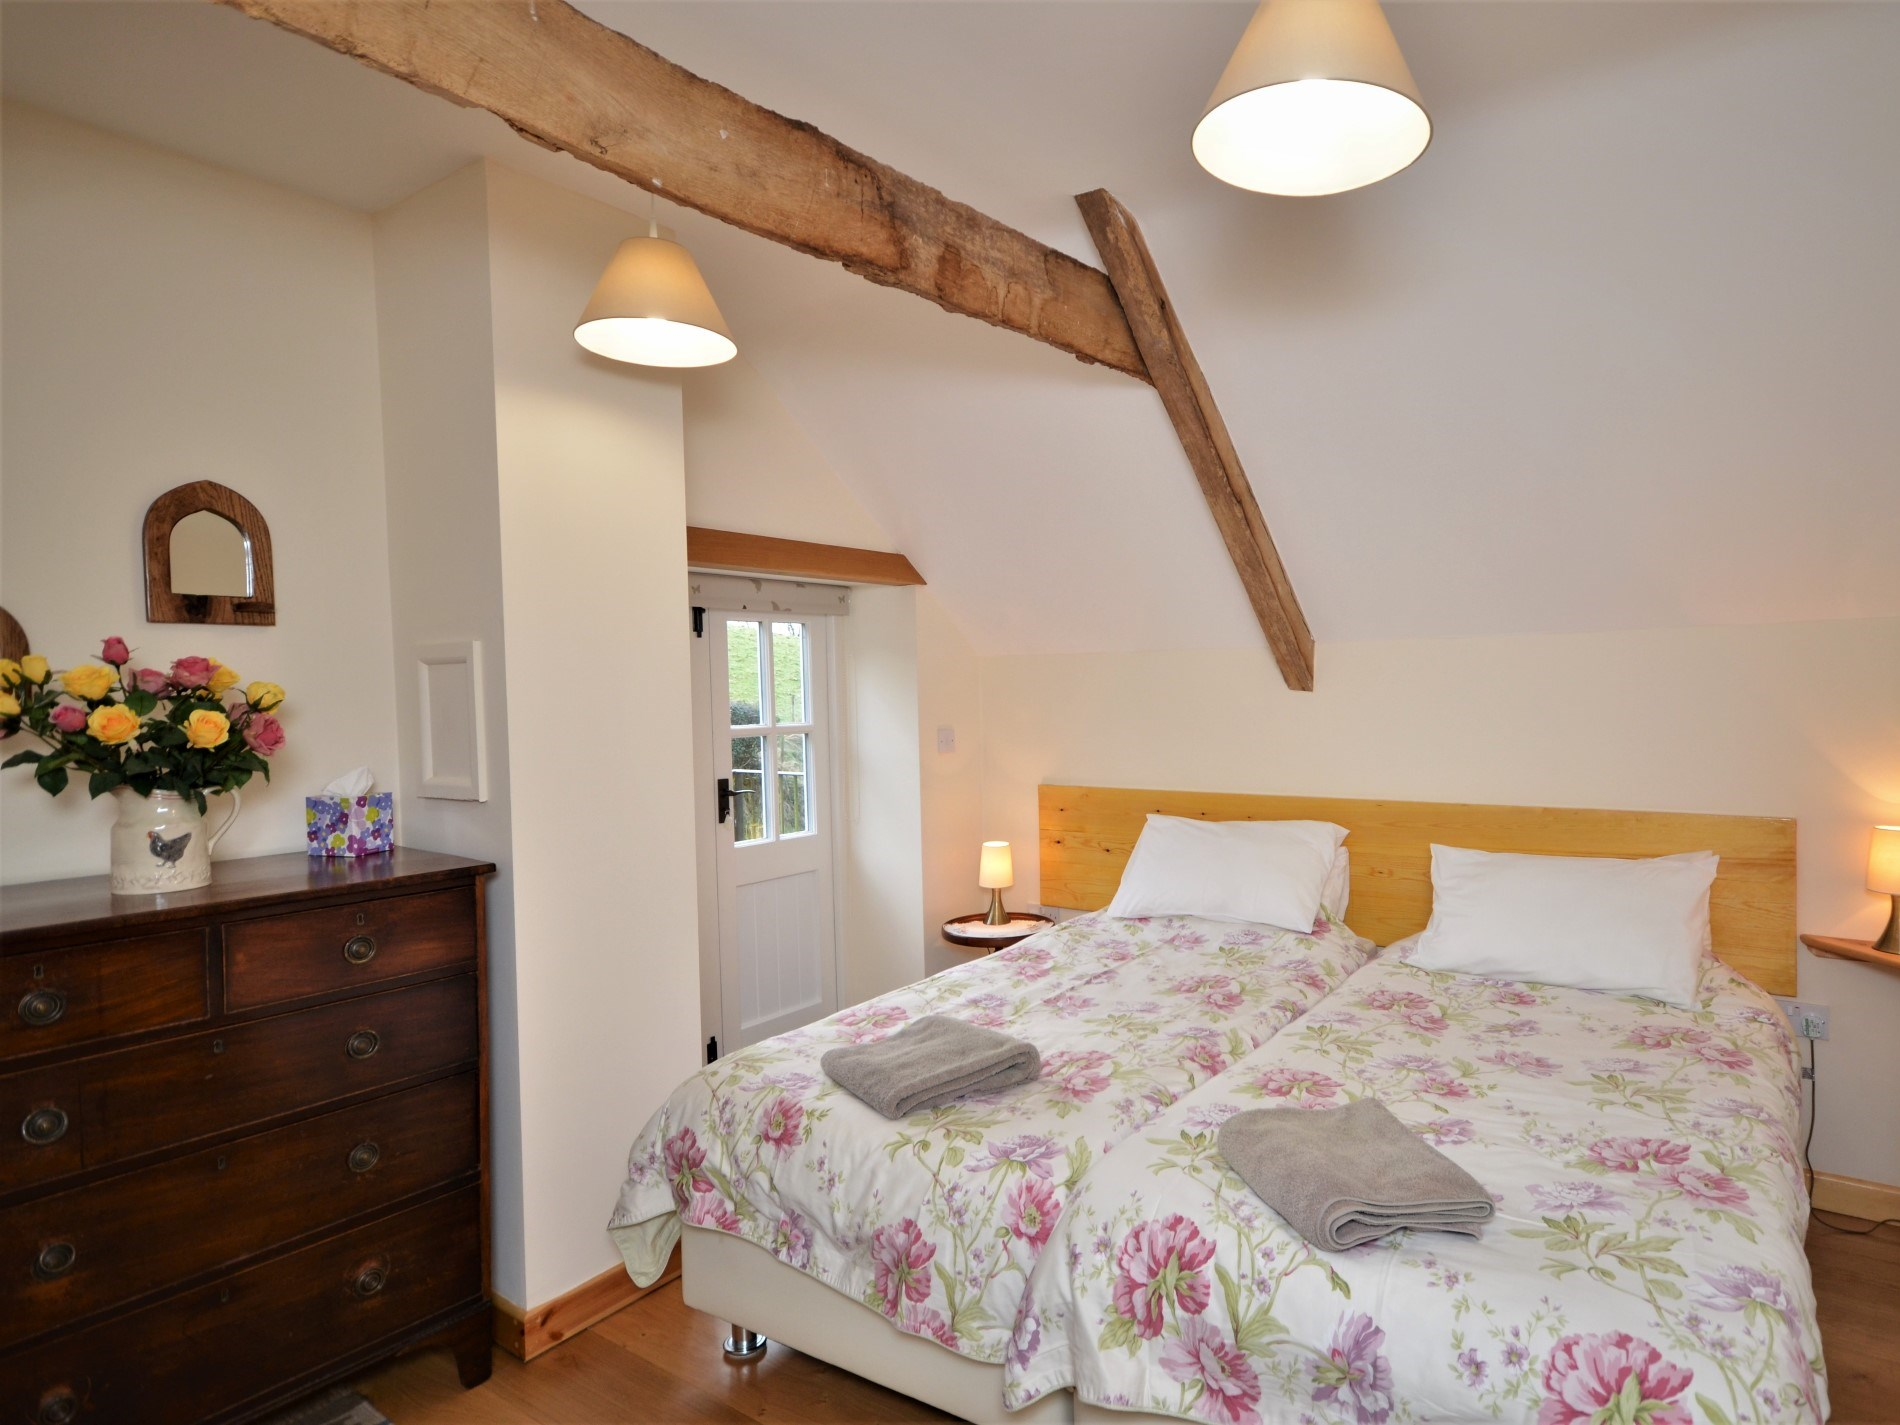 2 Bedroom Cottage in Minehead, Dorset and Somerset